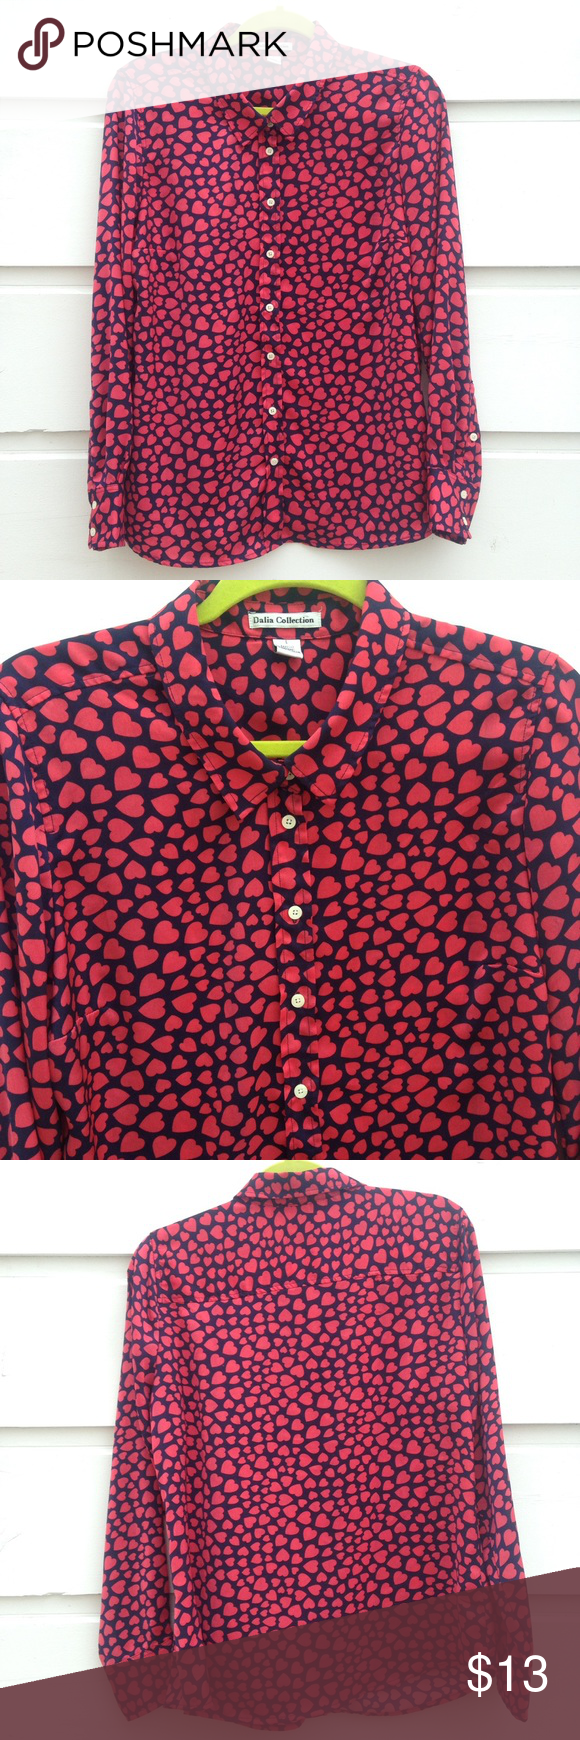 dalia collection hearts blouse  d tops and heart print - dalia collection hearts blouse